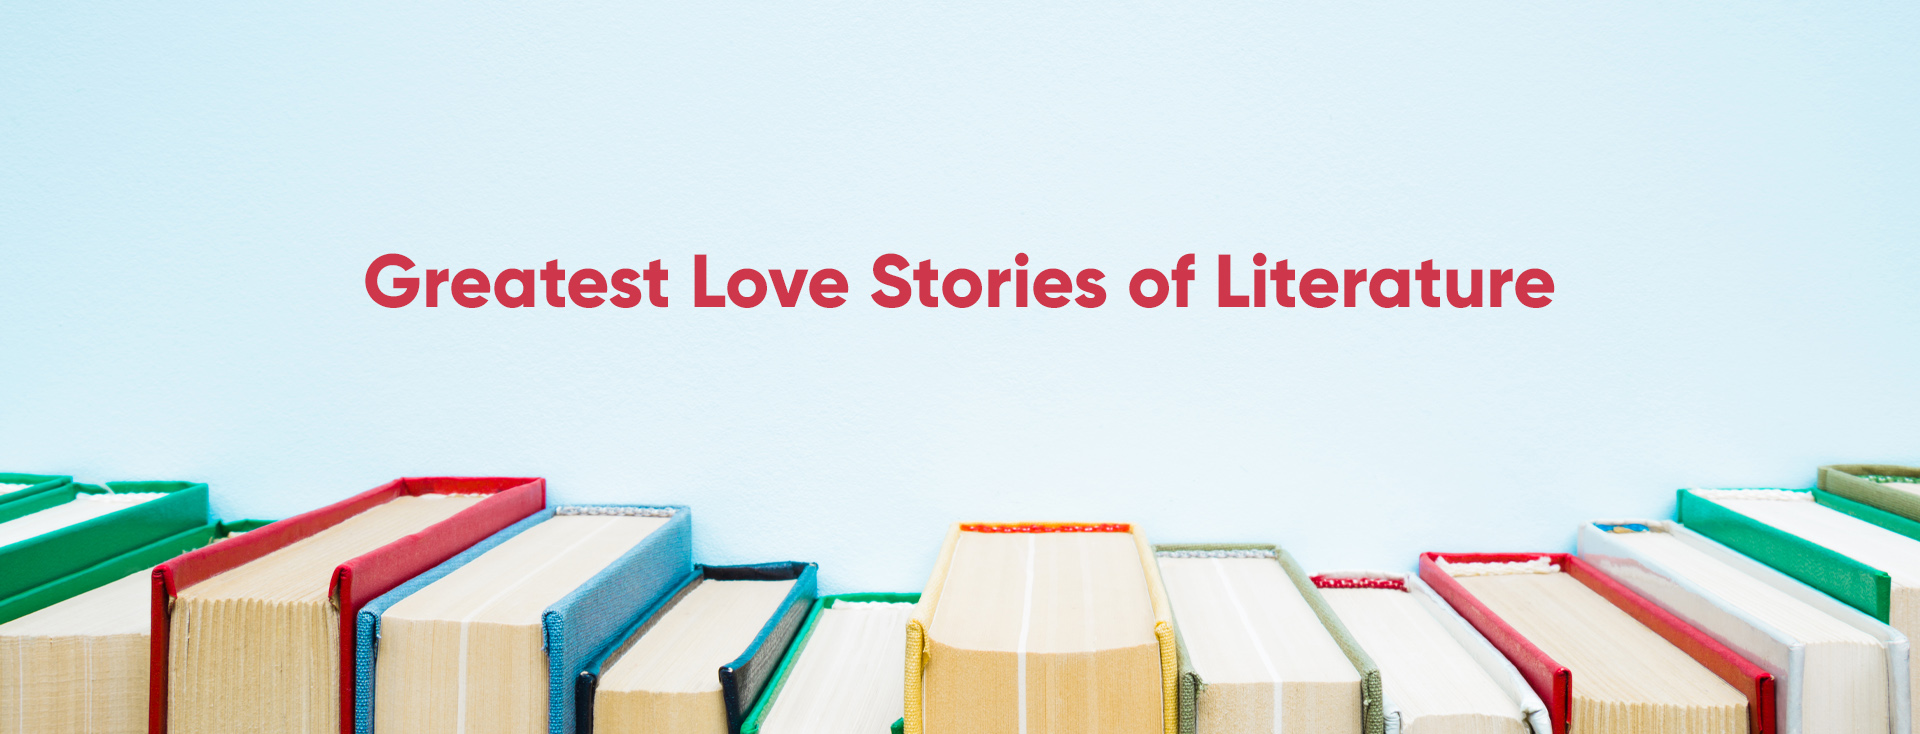 Greatest Love Stories of Literature